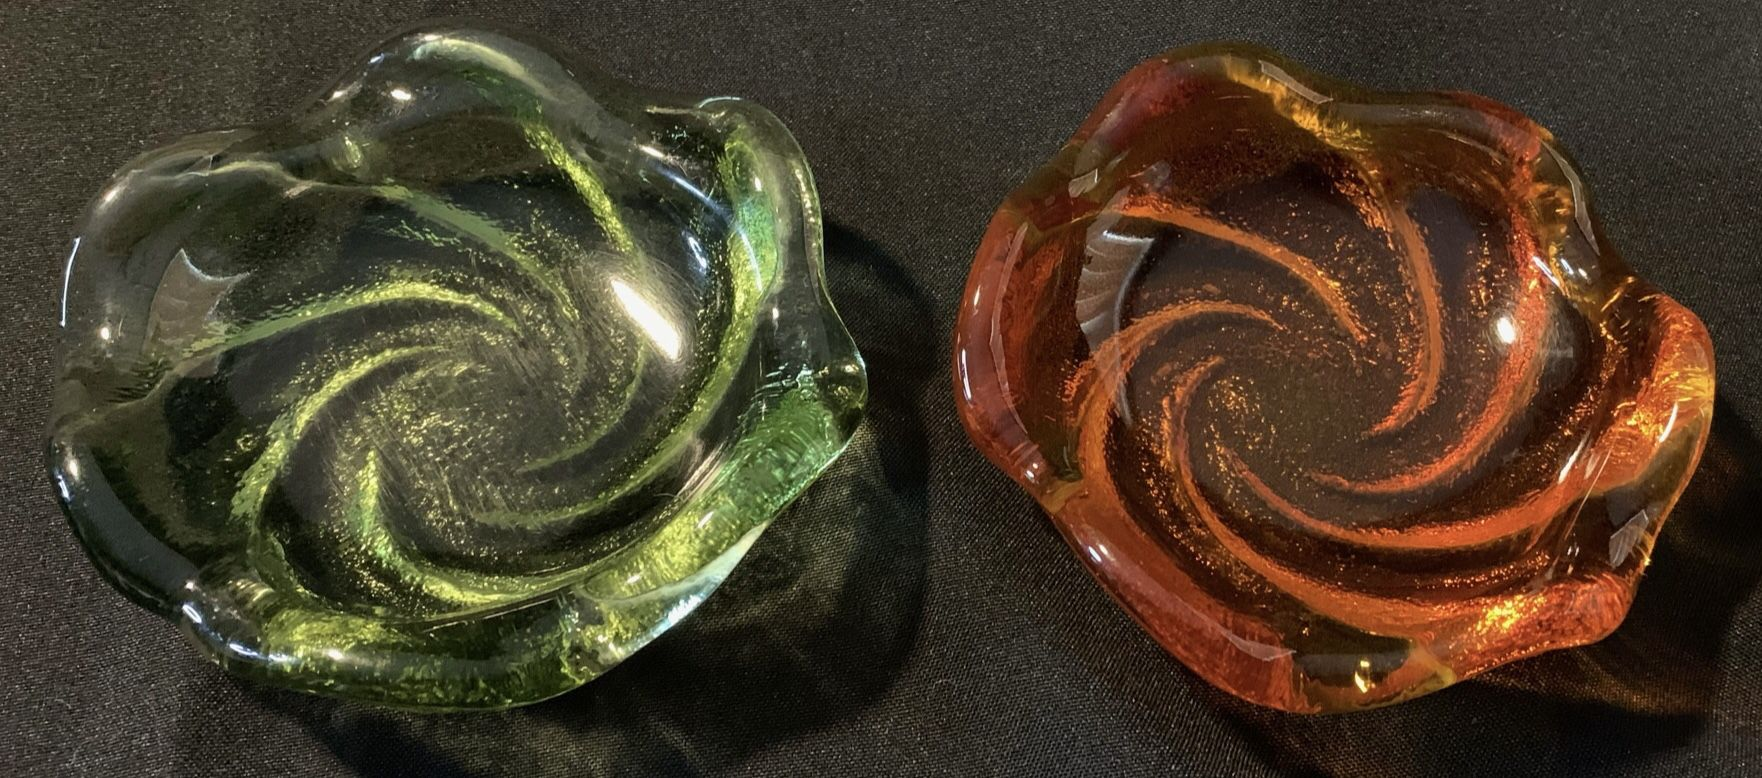 Pair of Heavy Vintage Glass Dishes (Soap Dishes?).